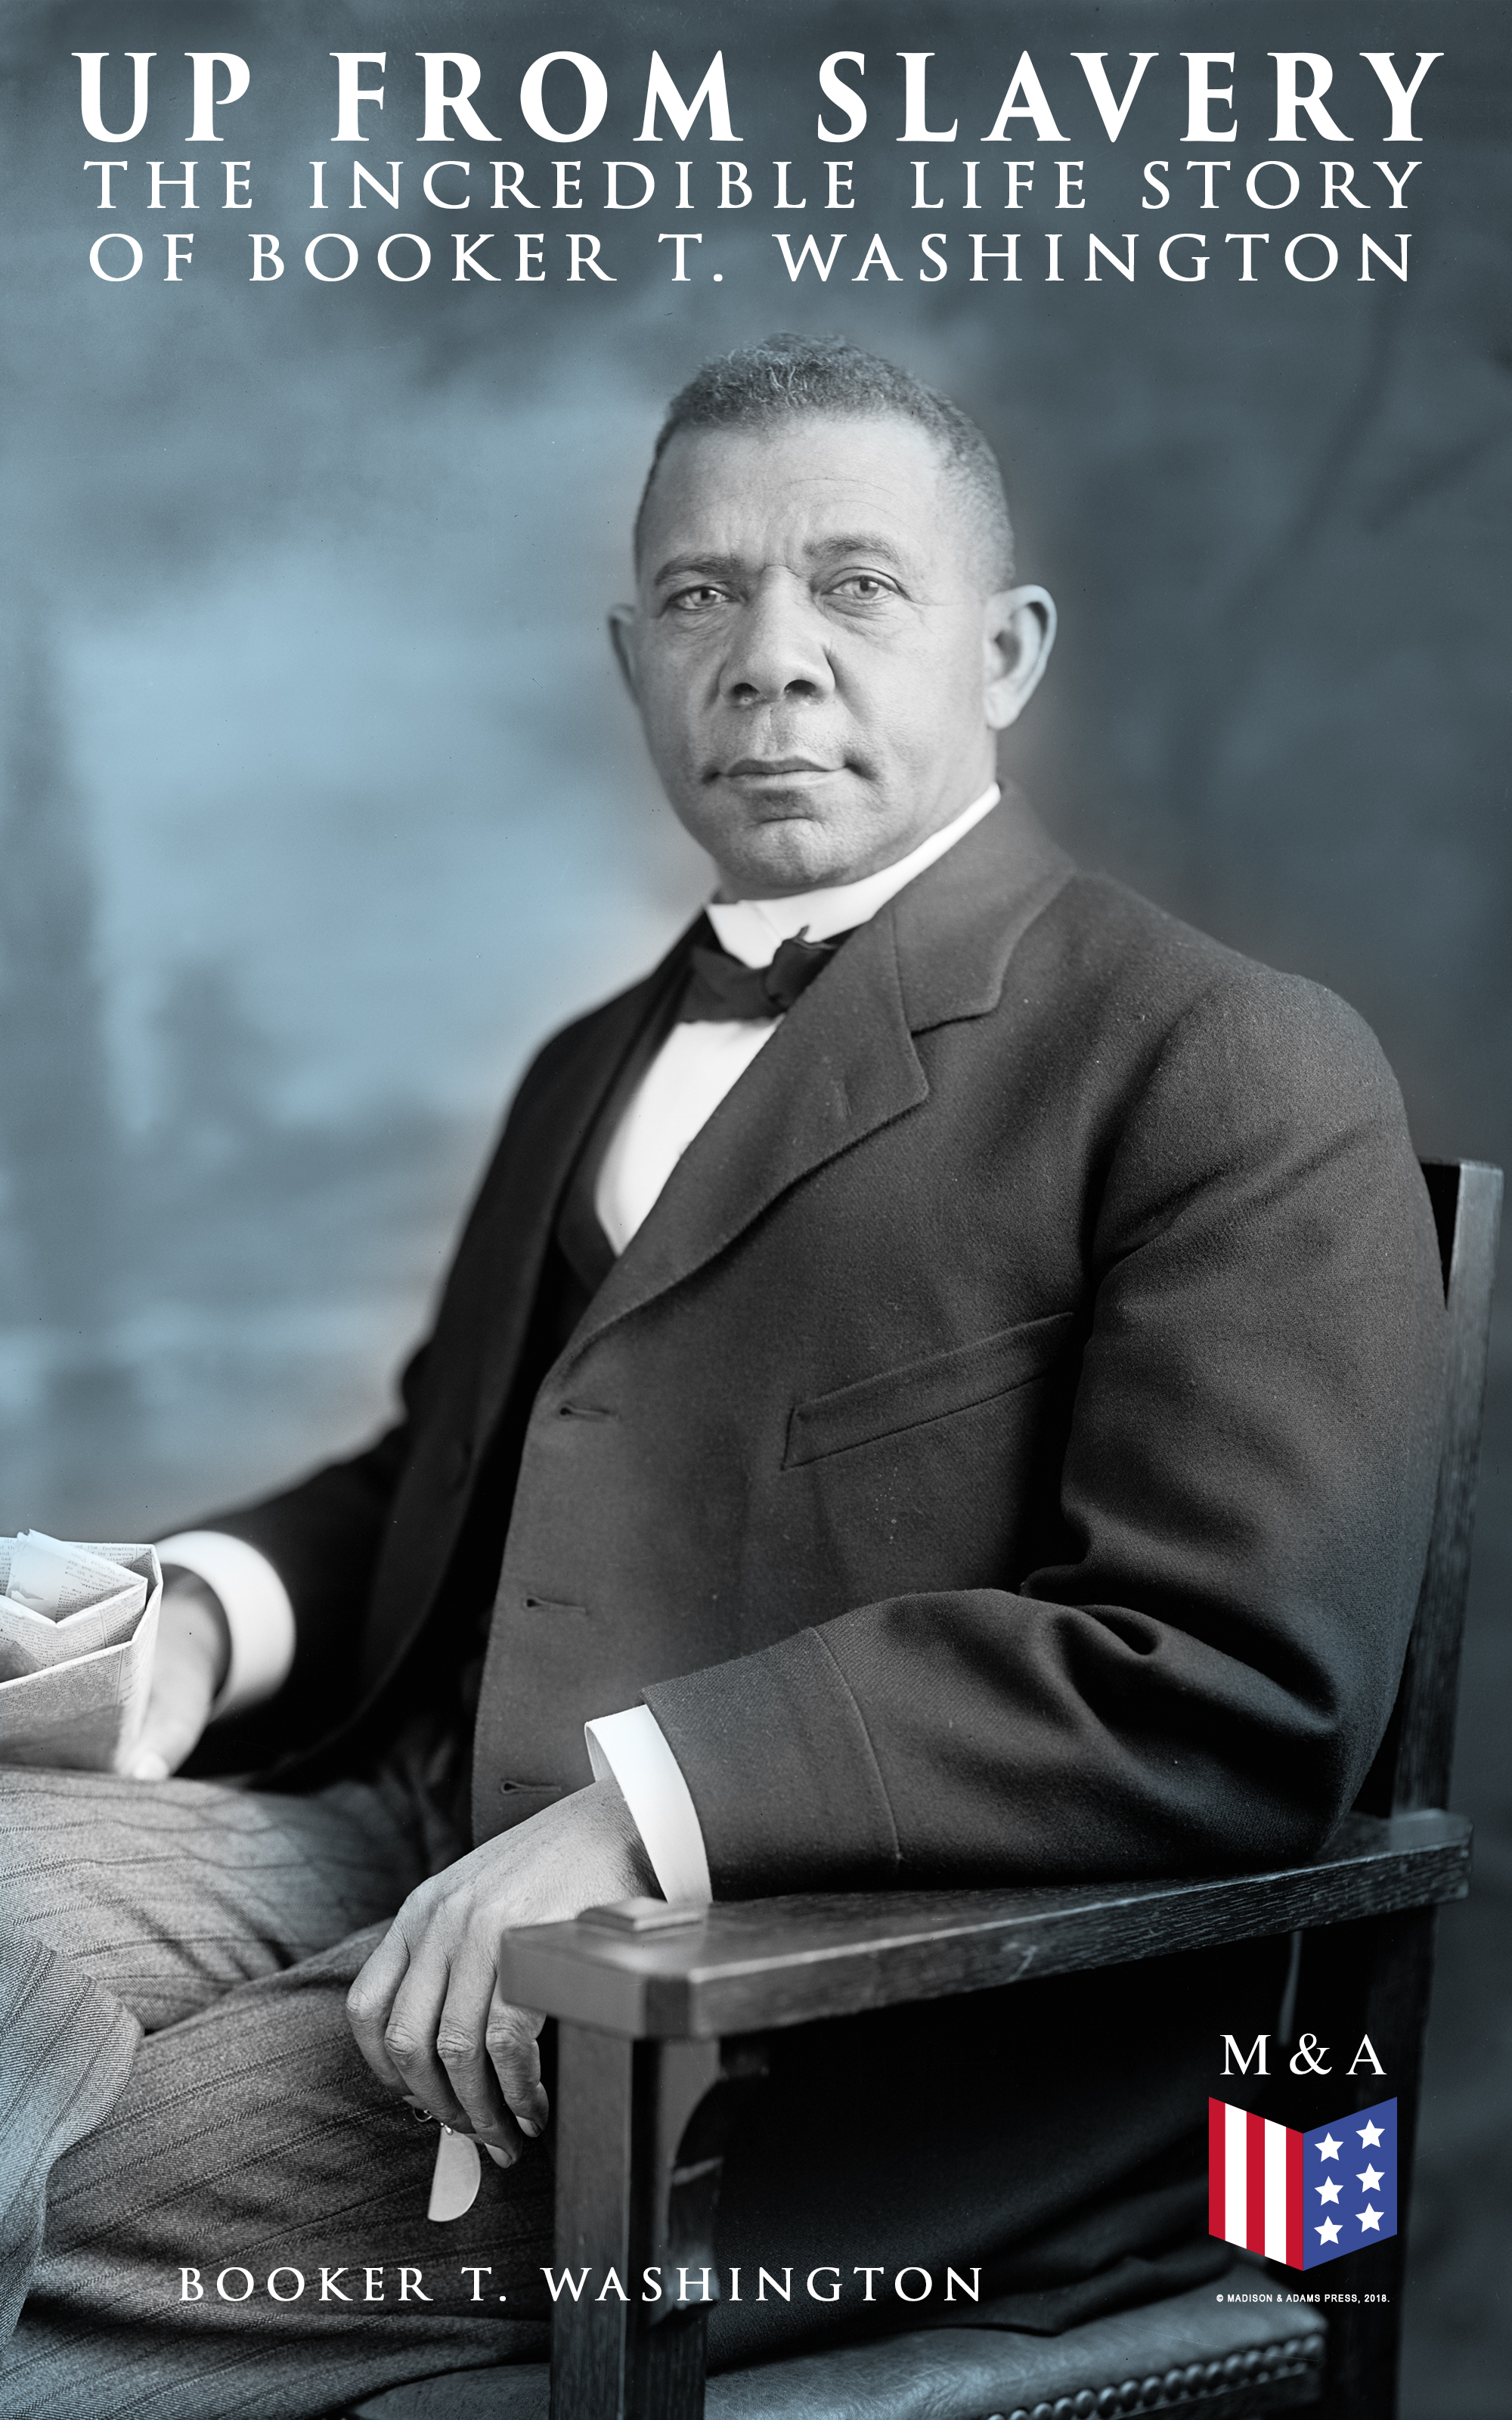 Booker T. Washington Up From Slavery: The Incredible Life Story of Booker T. Washington артур конан дойл дуэт со случайным хором